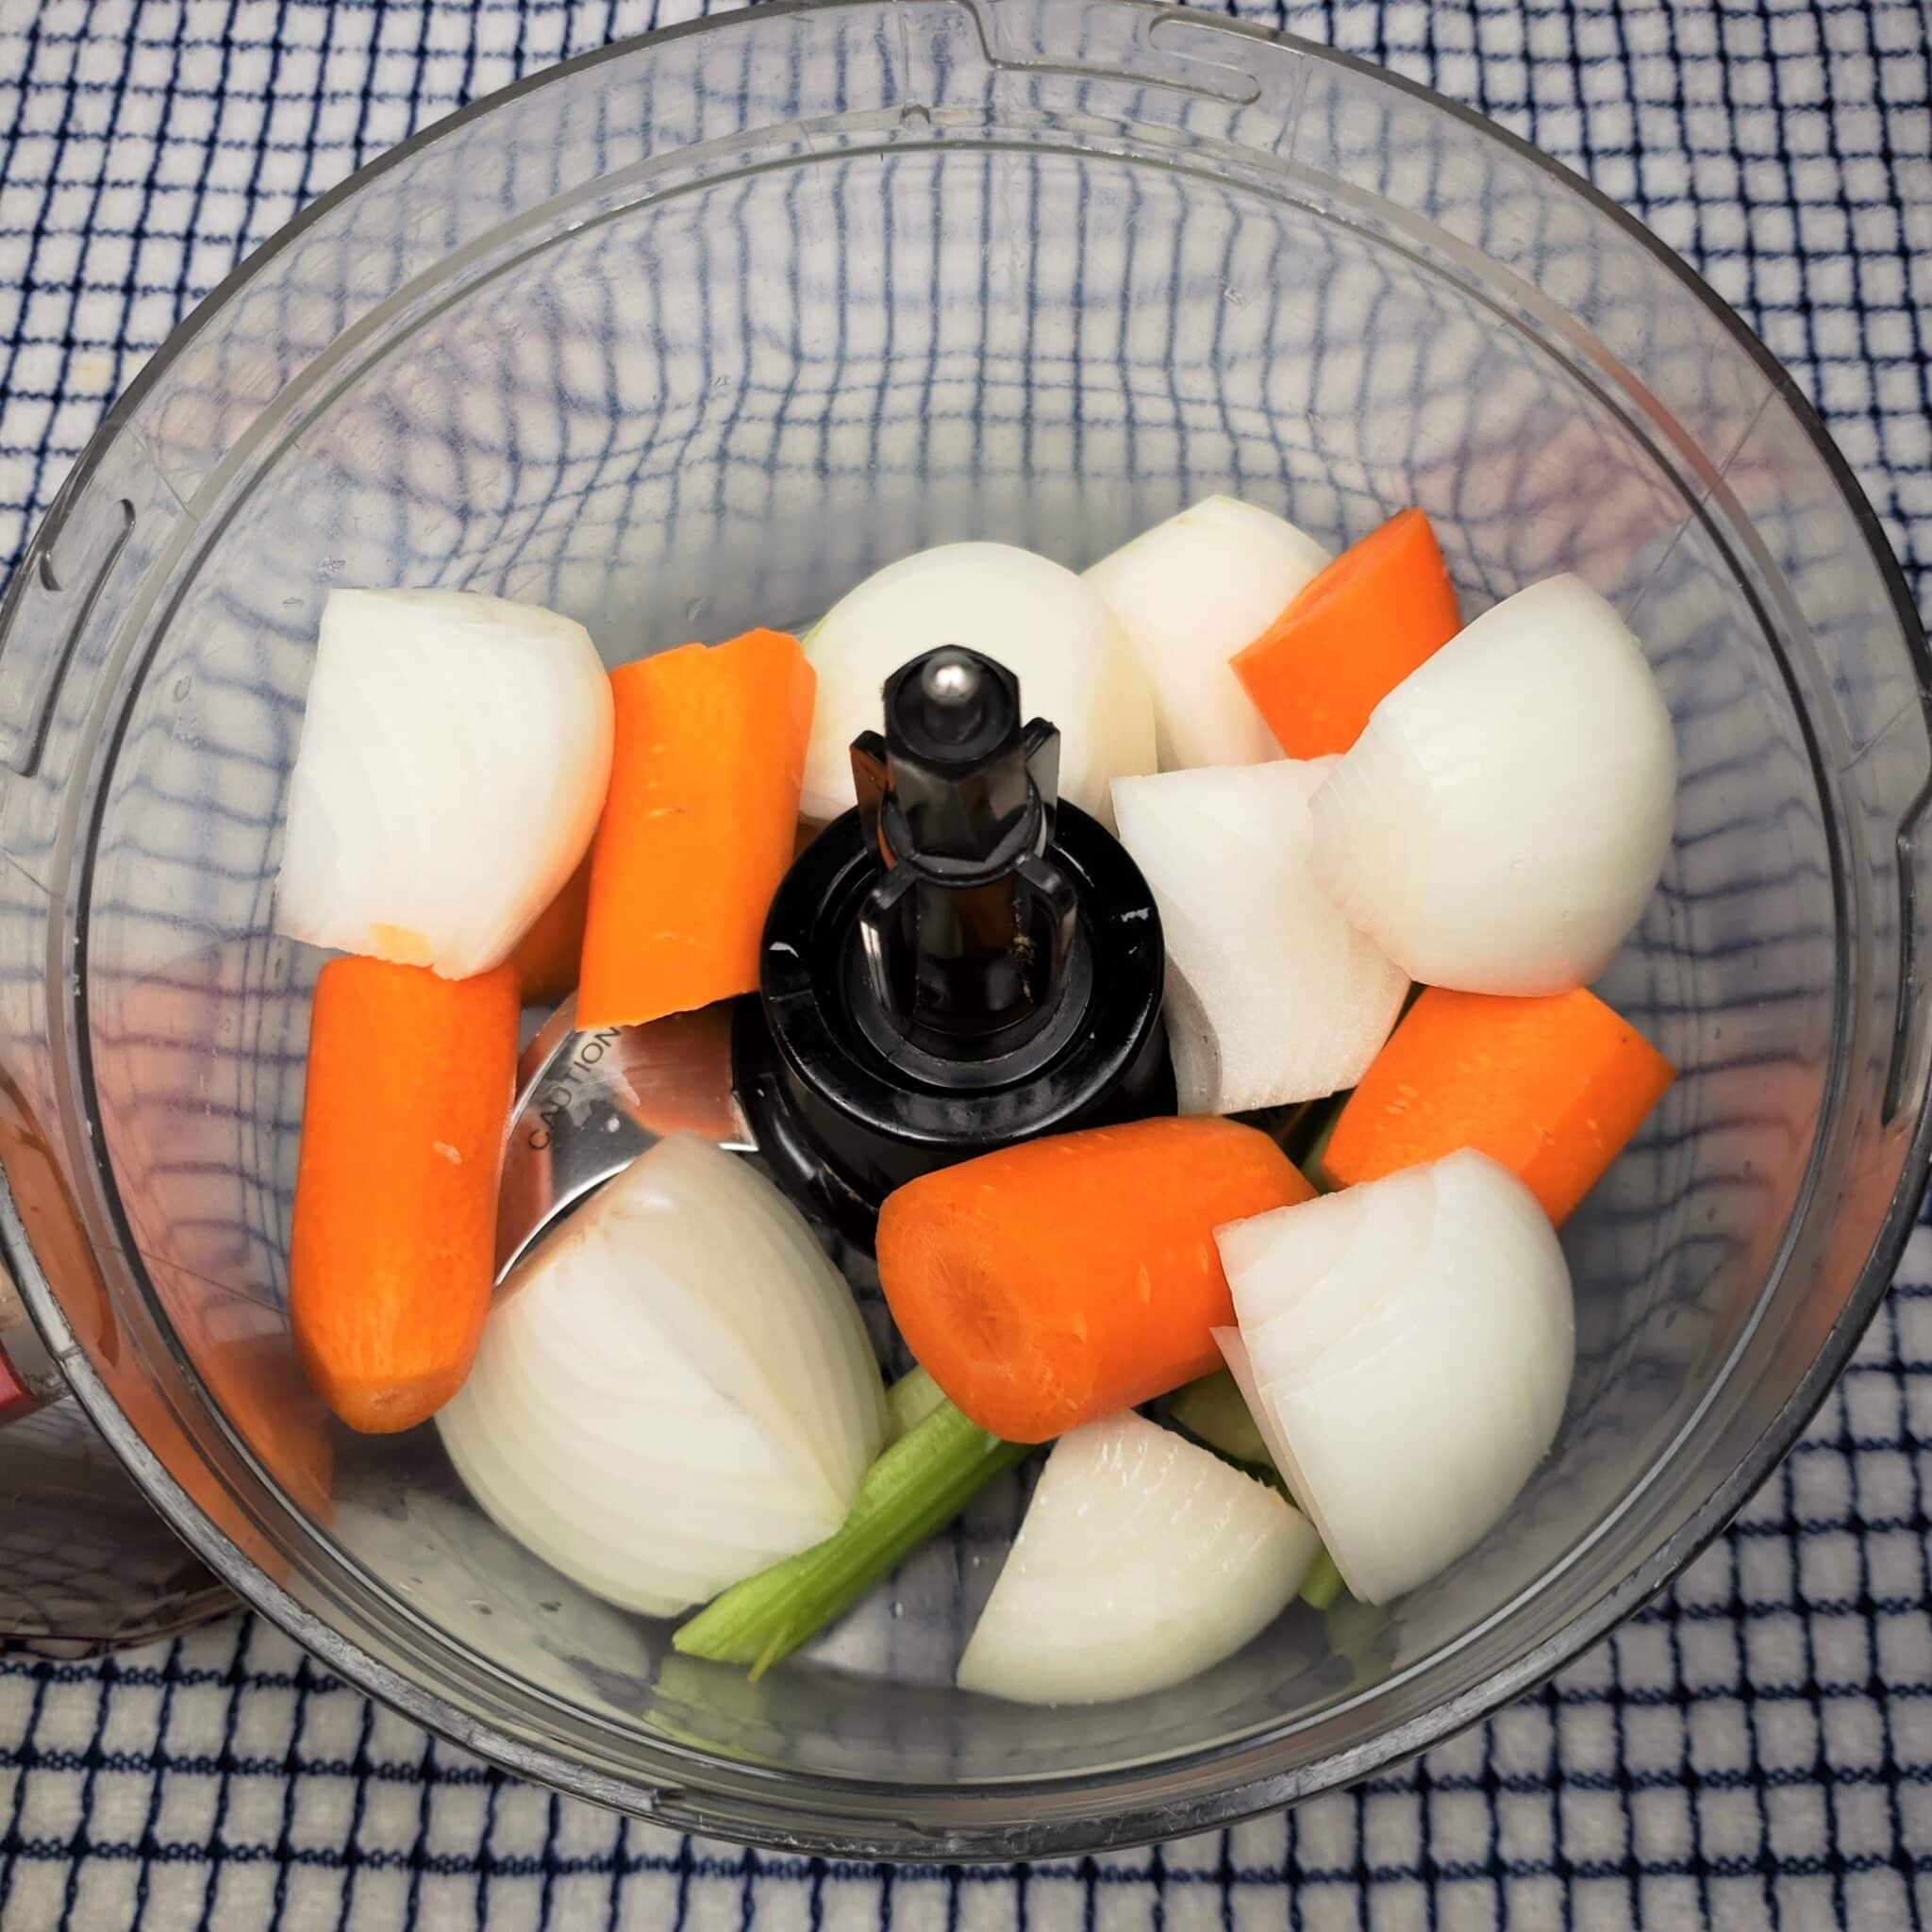 Process onions, carrots and celery in food processor